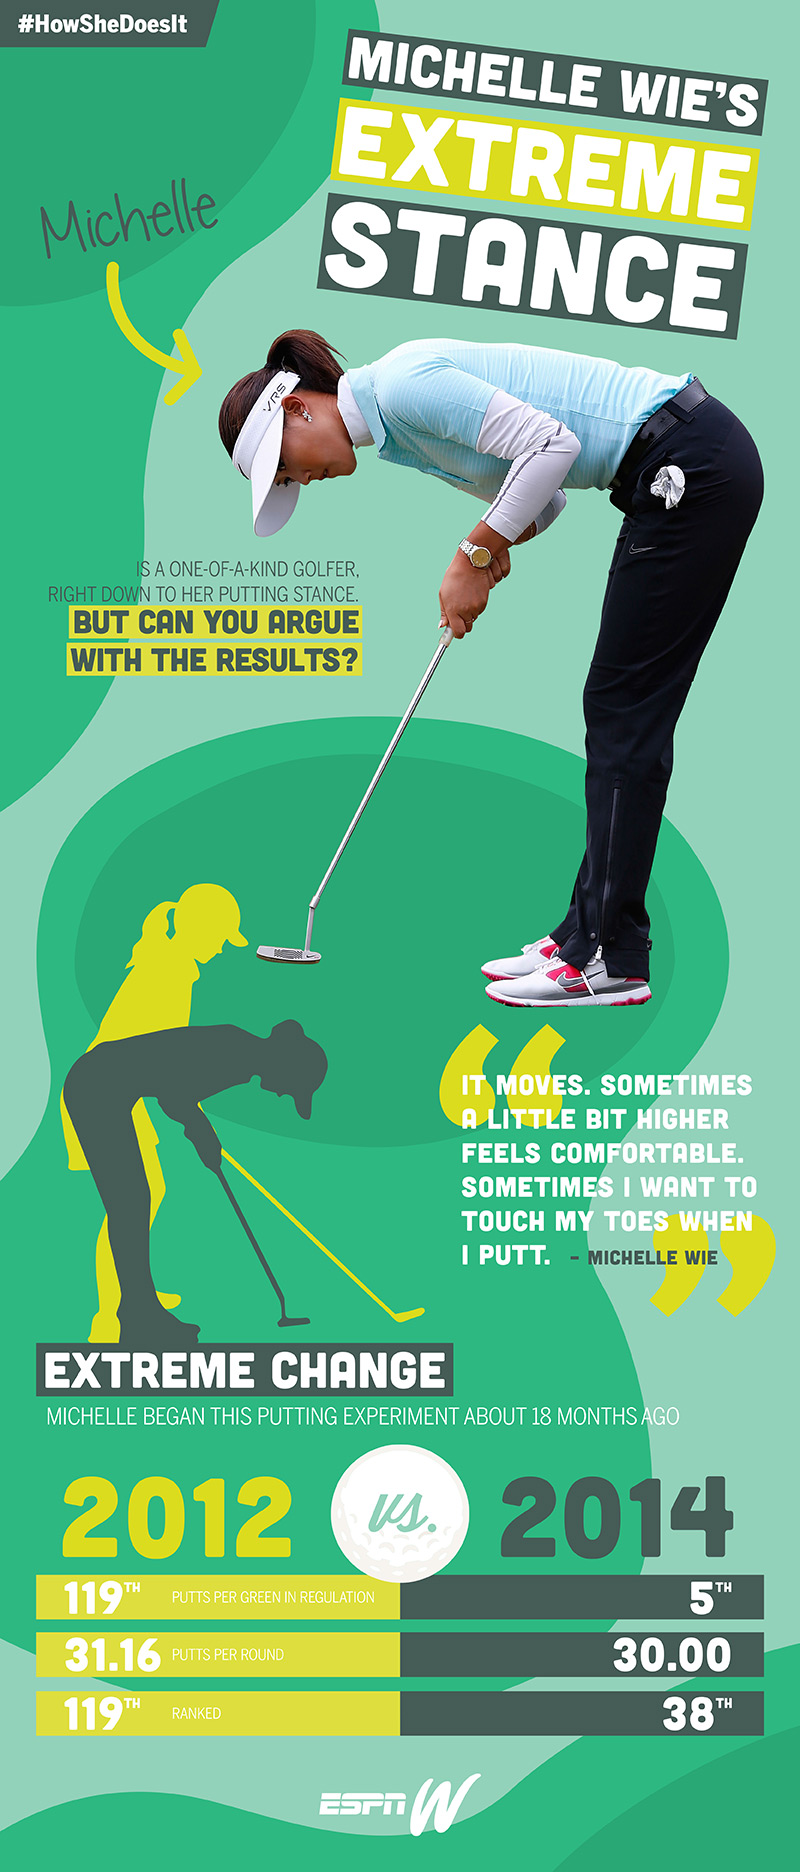 Breaking down the bizarre but effective stance of golfer Michelle Wie.